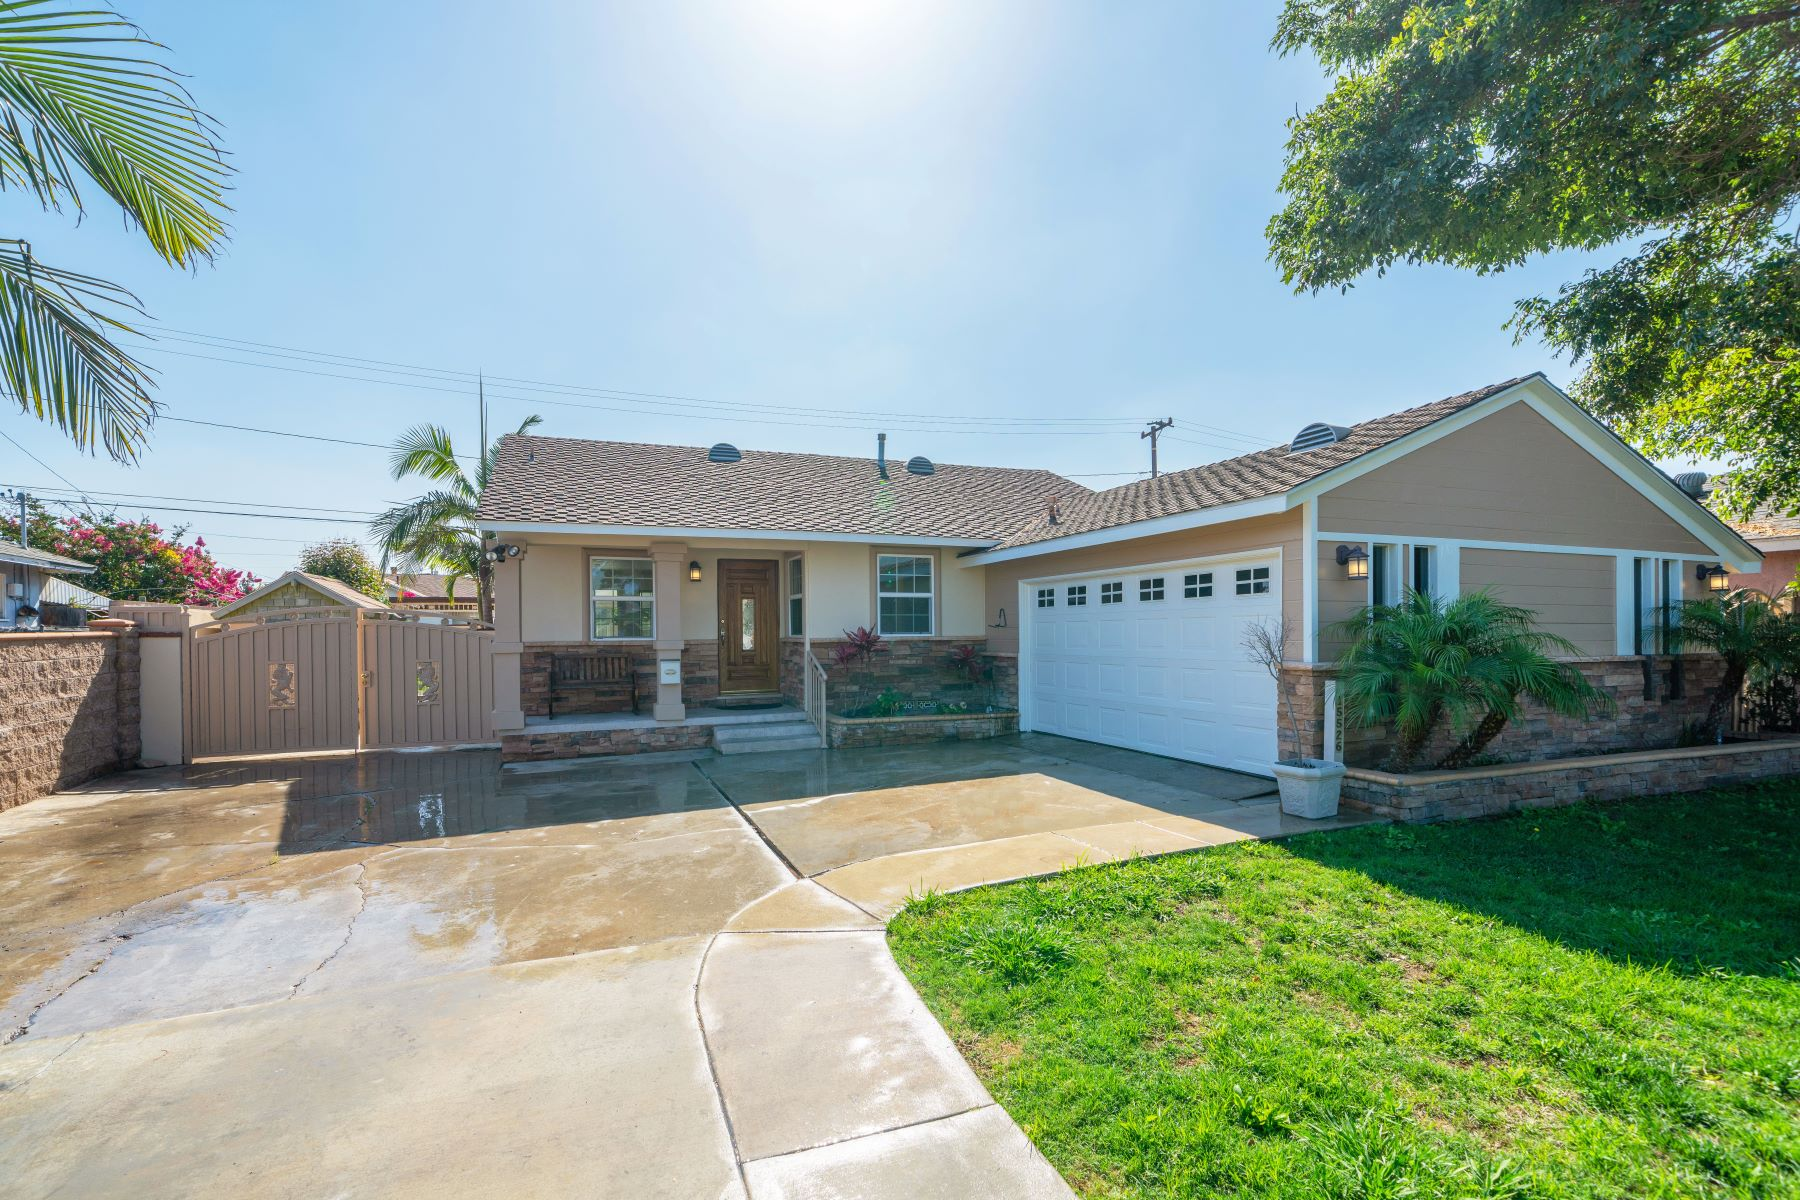 Single Family Homes for Sale at 15526 Prairie Avenue, Lawndale, CA 90260 15526 Prairie Avenue Lawndale, California 90260 United States